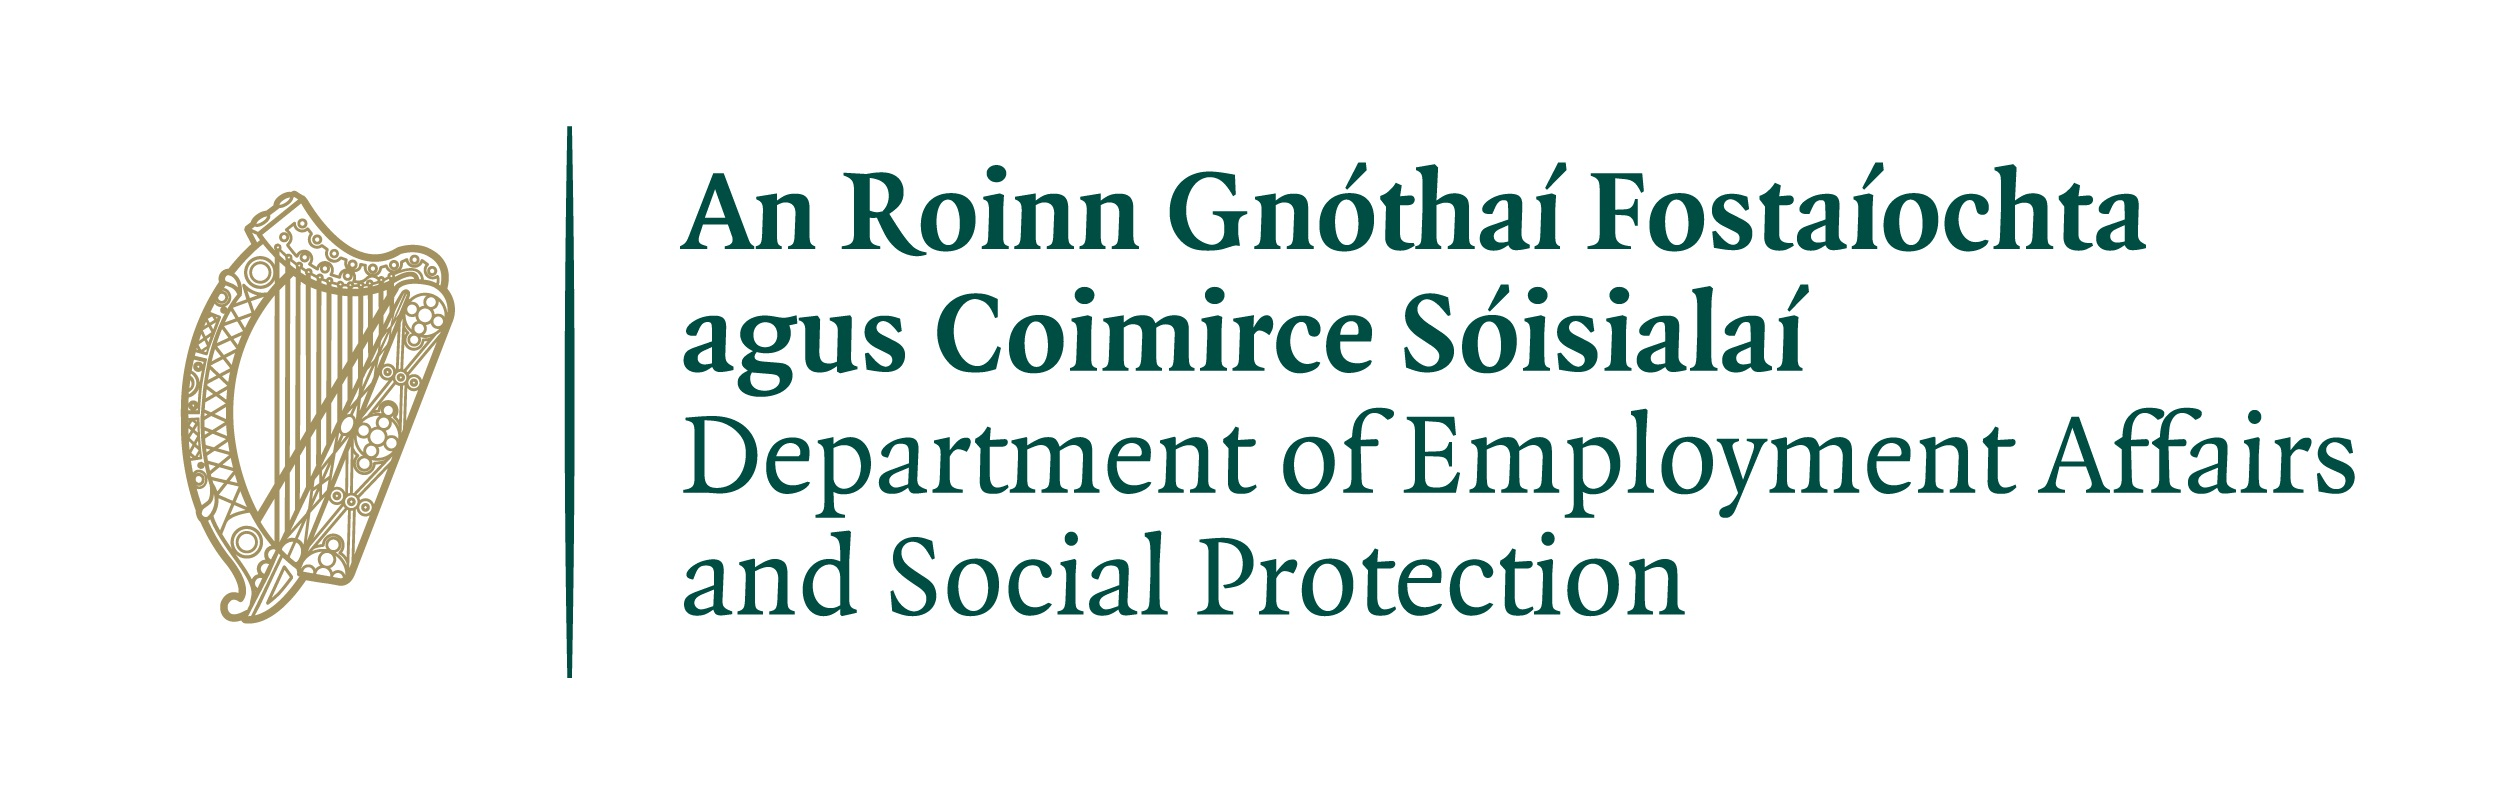 Department of Employment Affairs and Social Protection logo